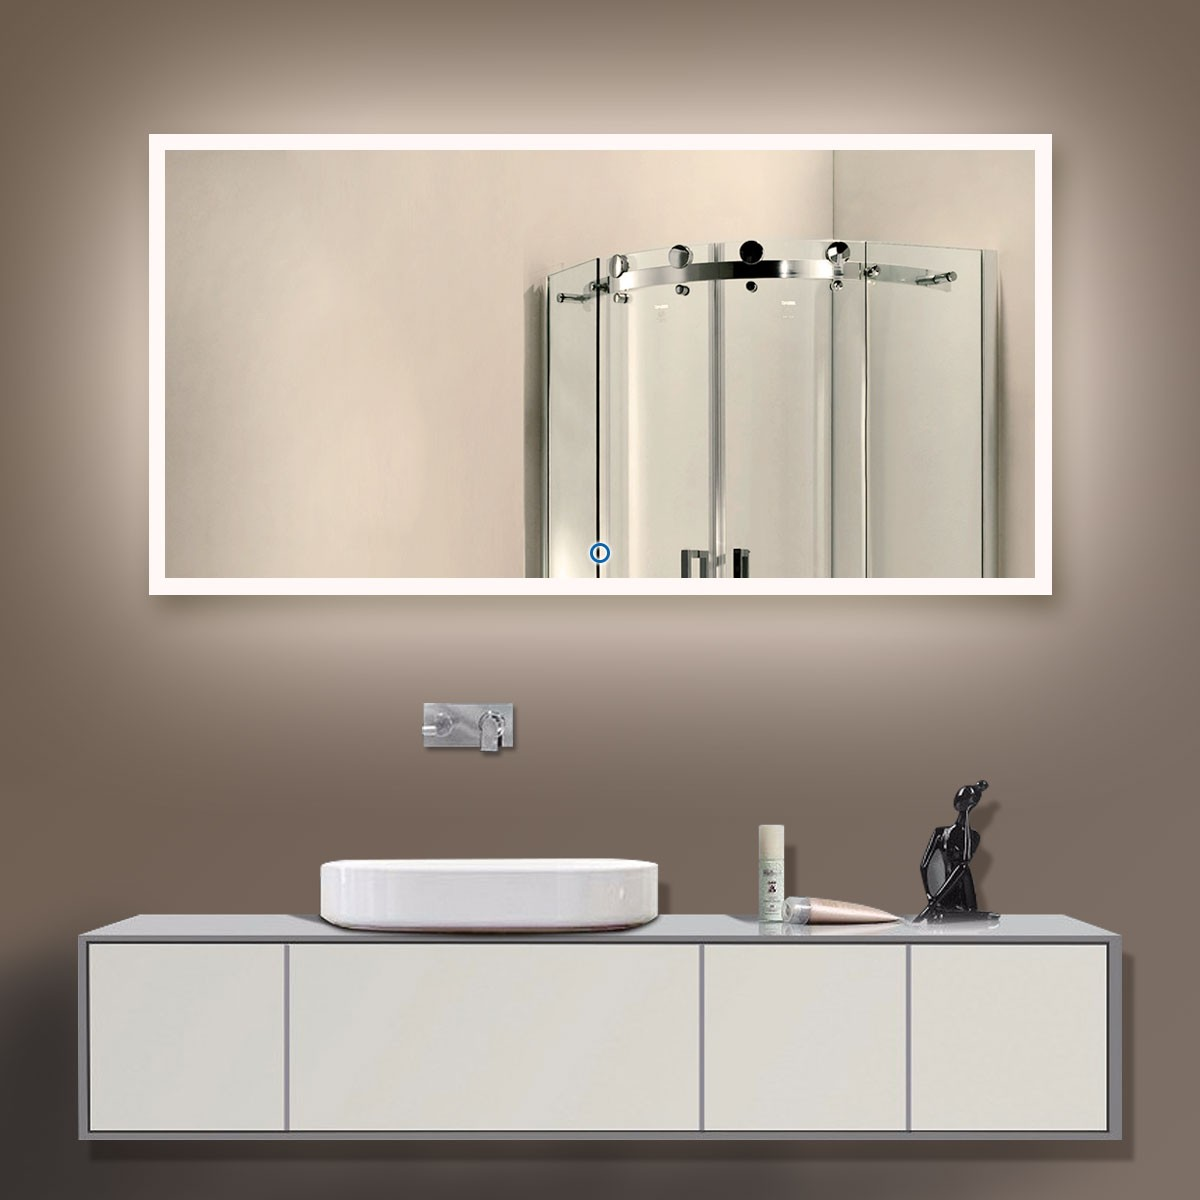 55 x 28 In. Horizontal LED Mirror, Touch Button (DK-OD-N031-D)